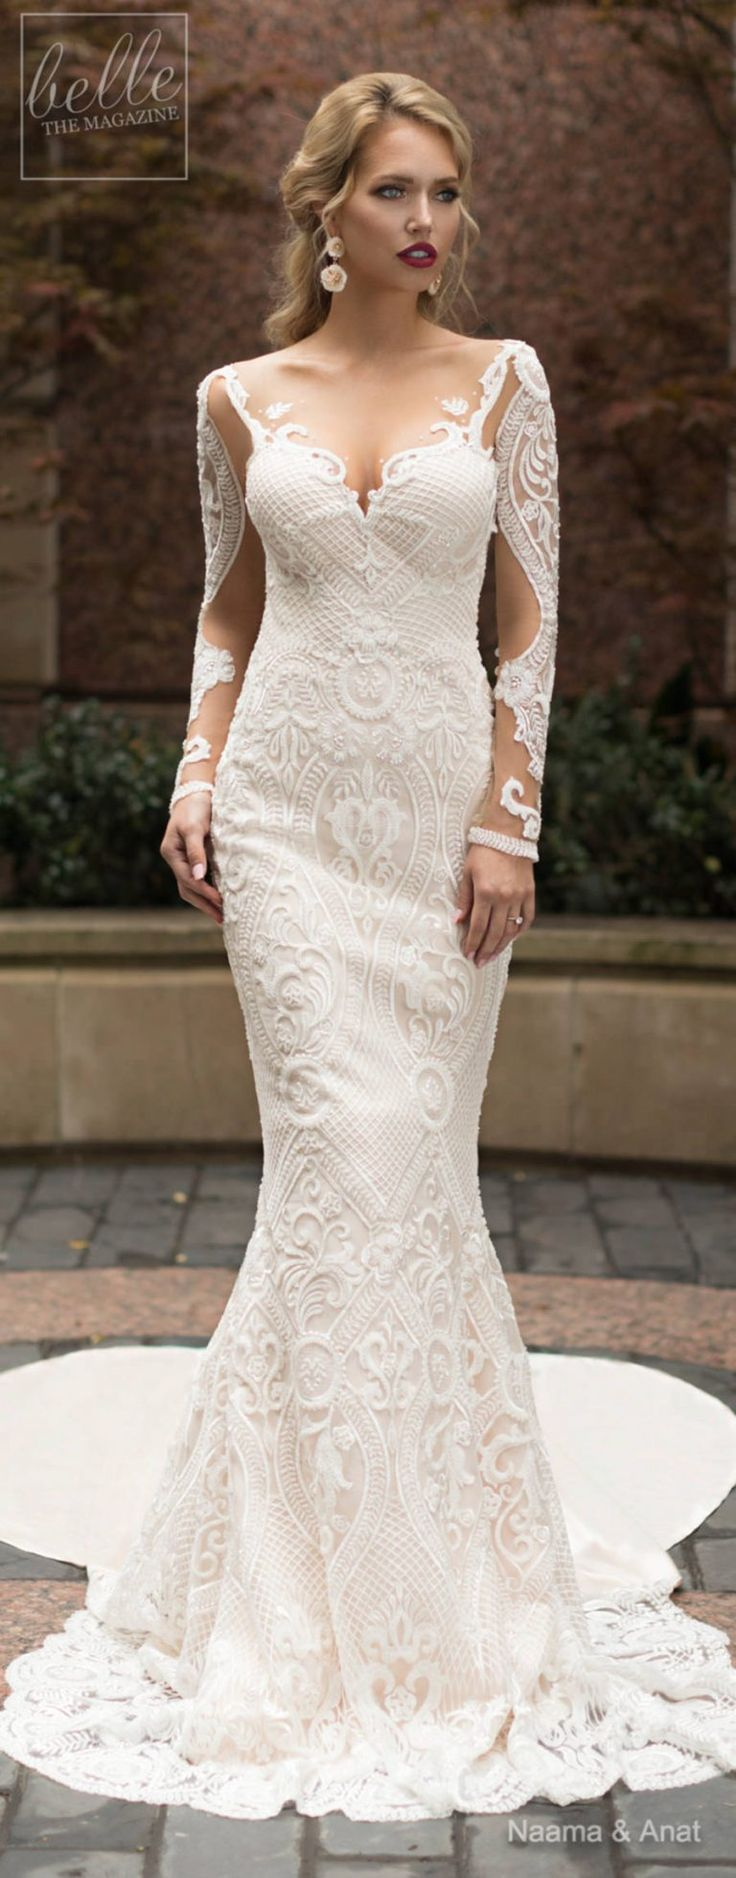 Lace wedding dress for short person january 2019  best dress images on Pinterest  Gown wedding Groom attire and